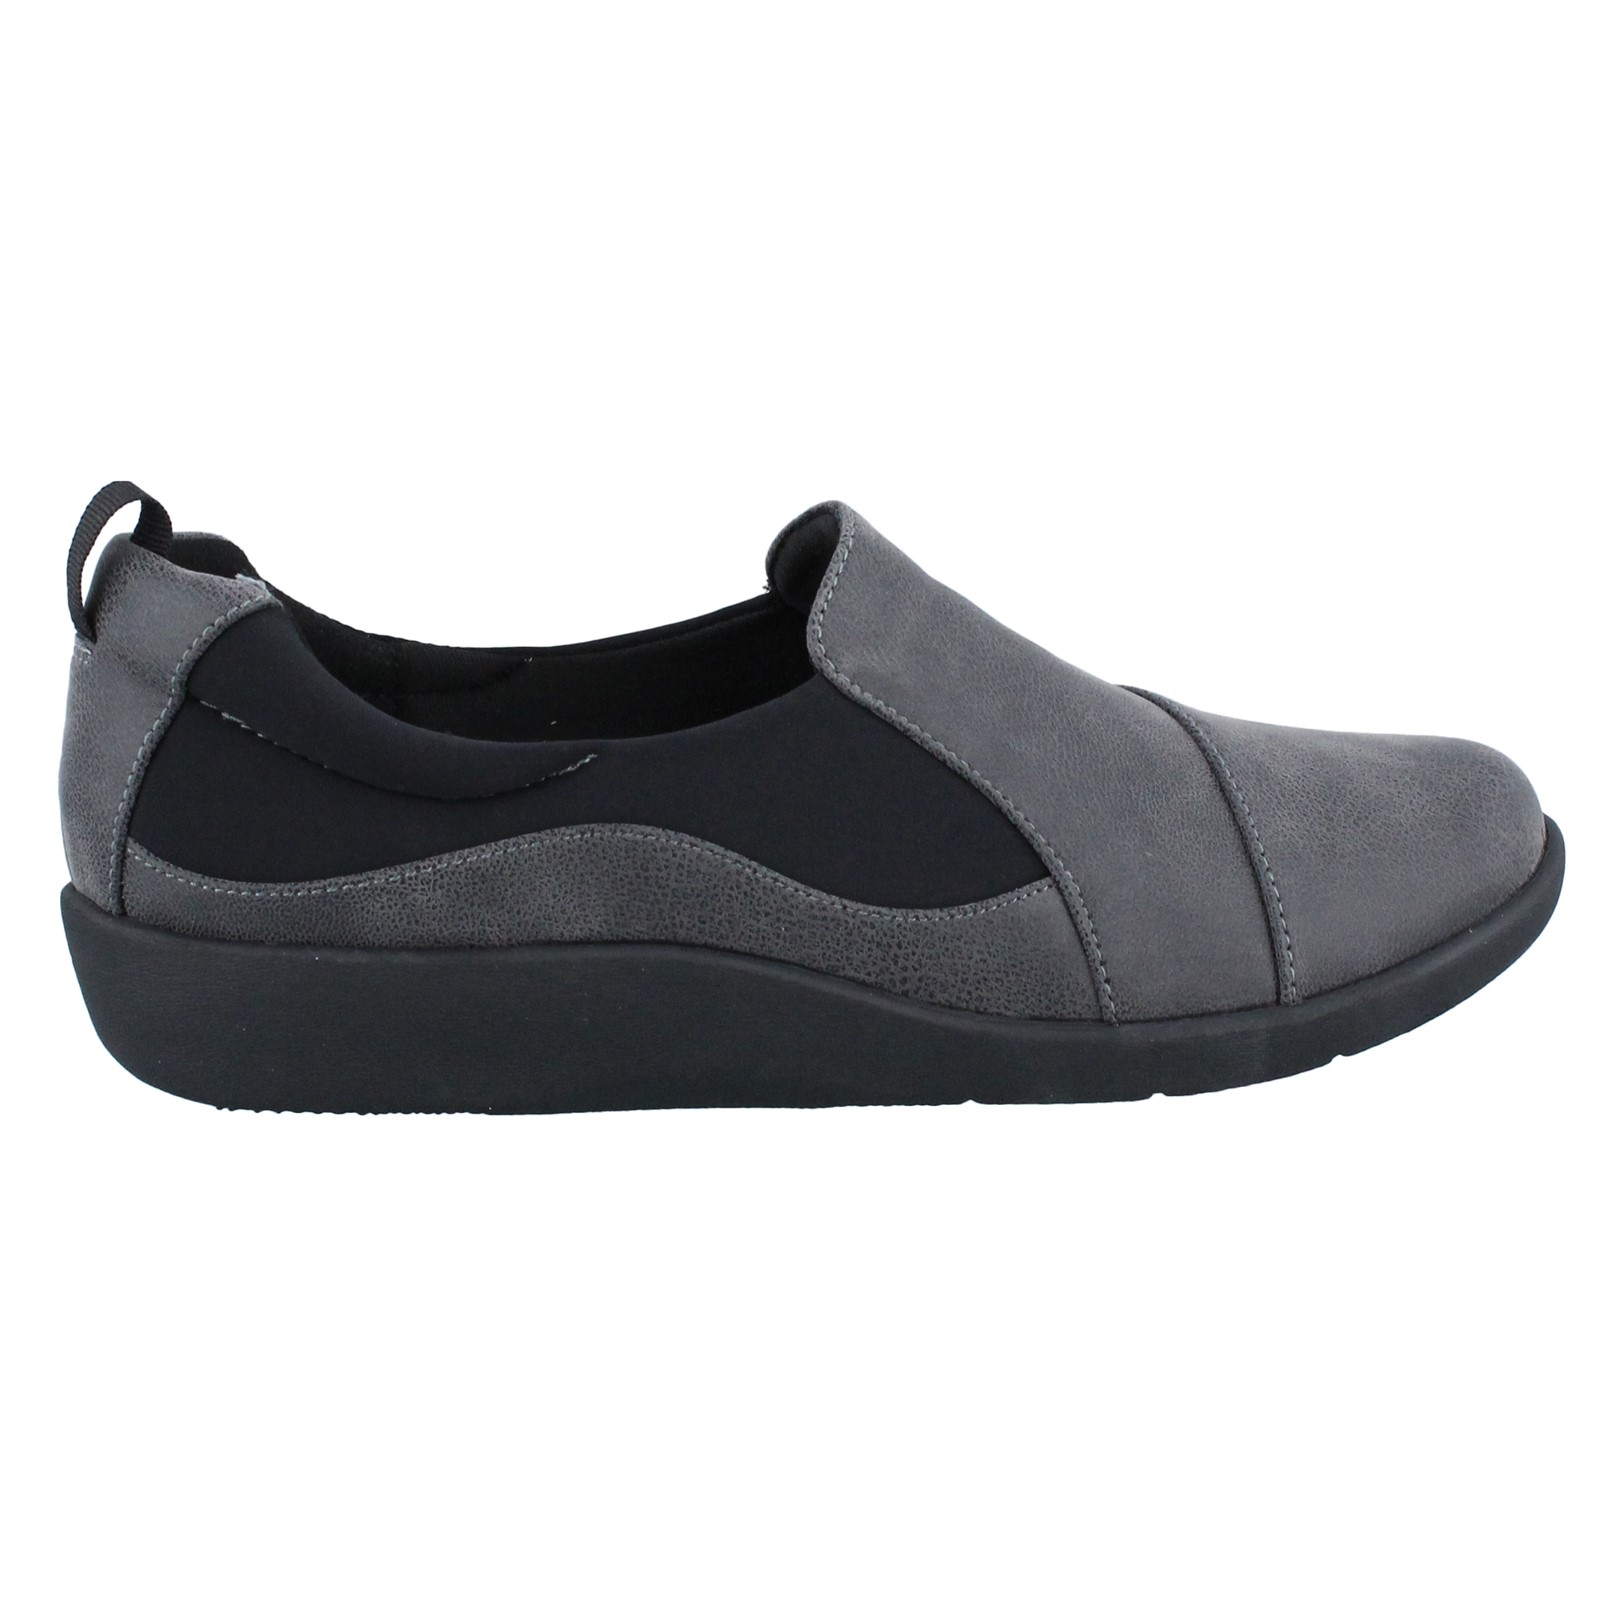 Women's Clarks, Sillian Paz Slip on Shoe